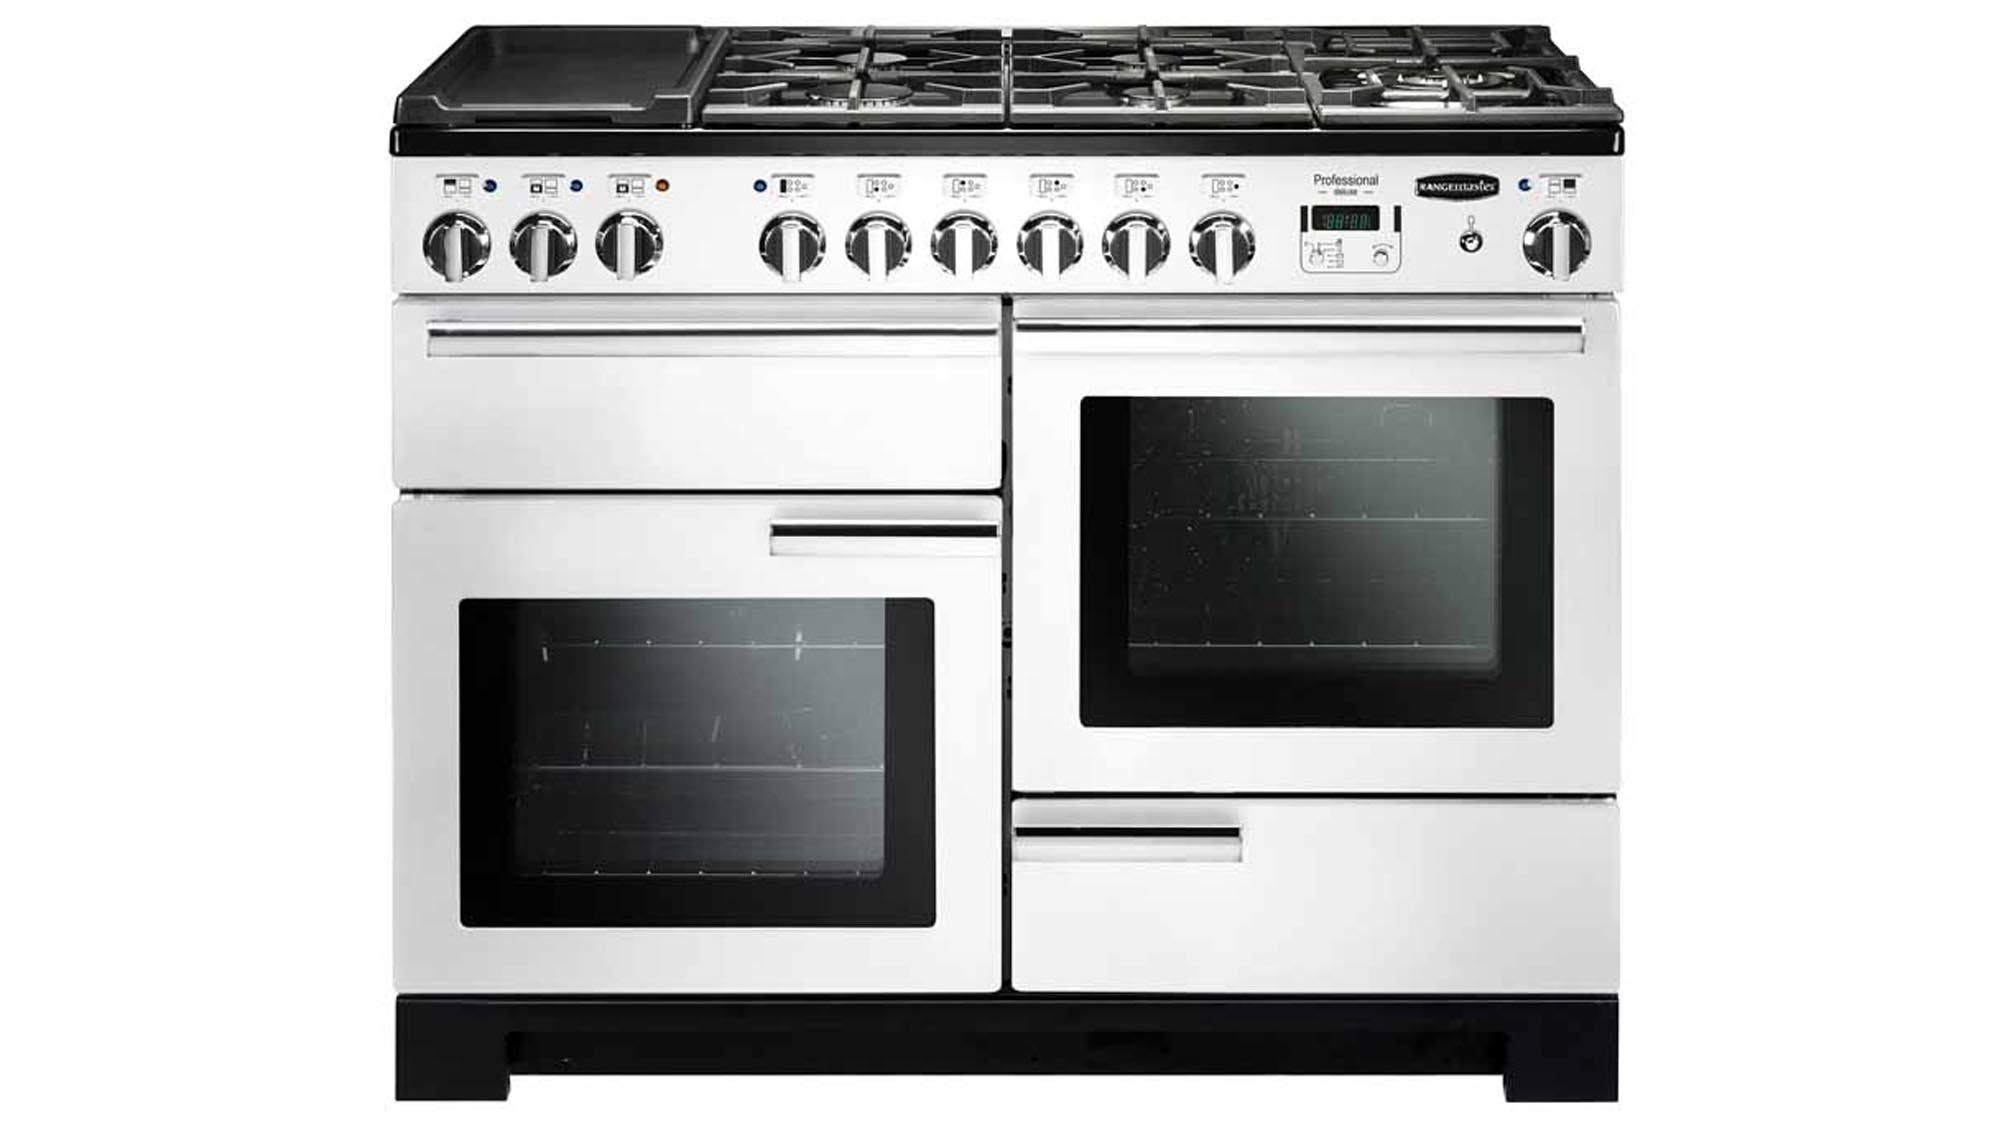 Best Oven The Ovens Hobs And Cookers From 380 Expert Reviews Wiring Electric Induction Hob Decent Slab Of Kitchen Space To Spare Step Right This Way Rangemaster Is Another British Company Note It Invented Range Cooker In 1830